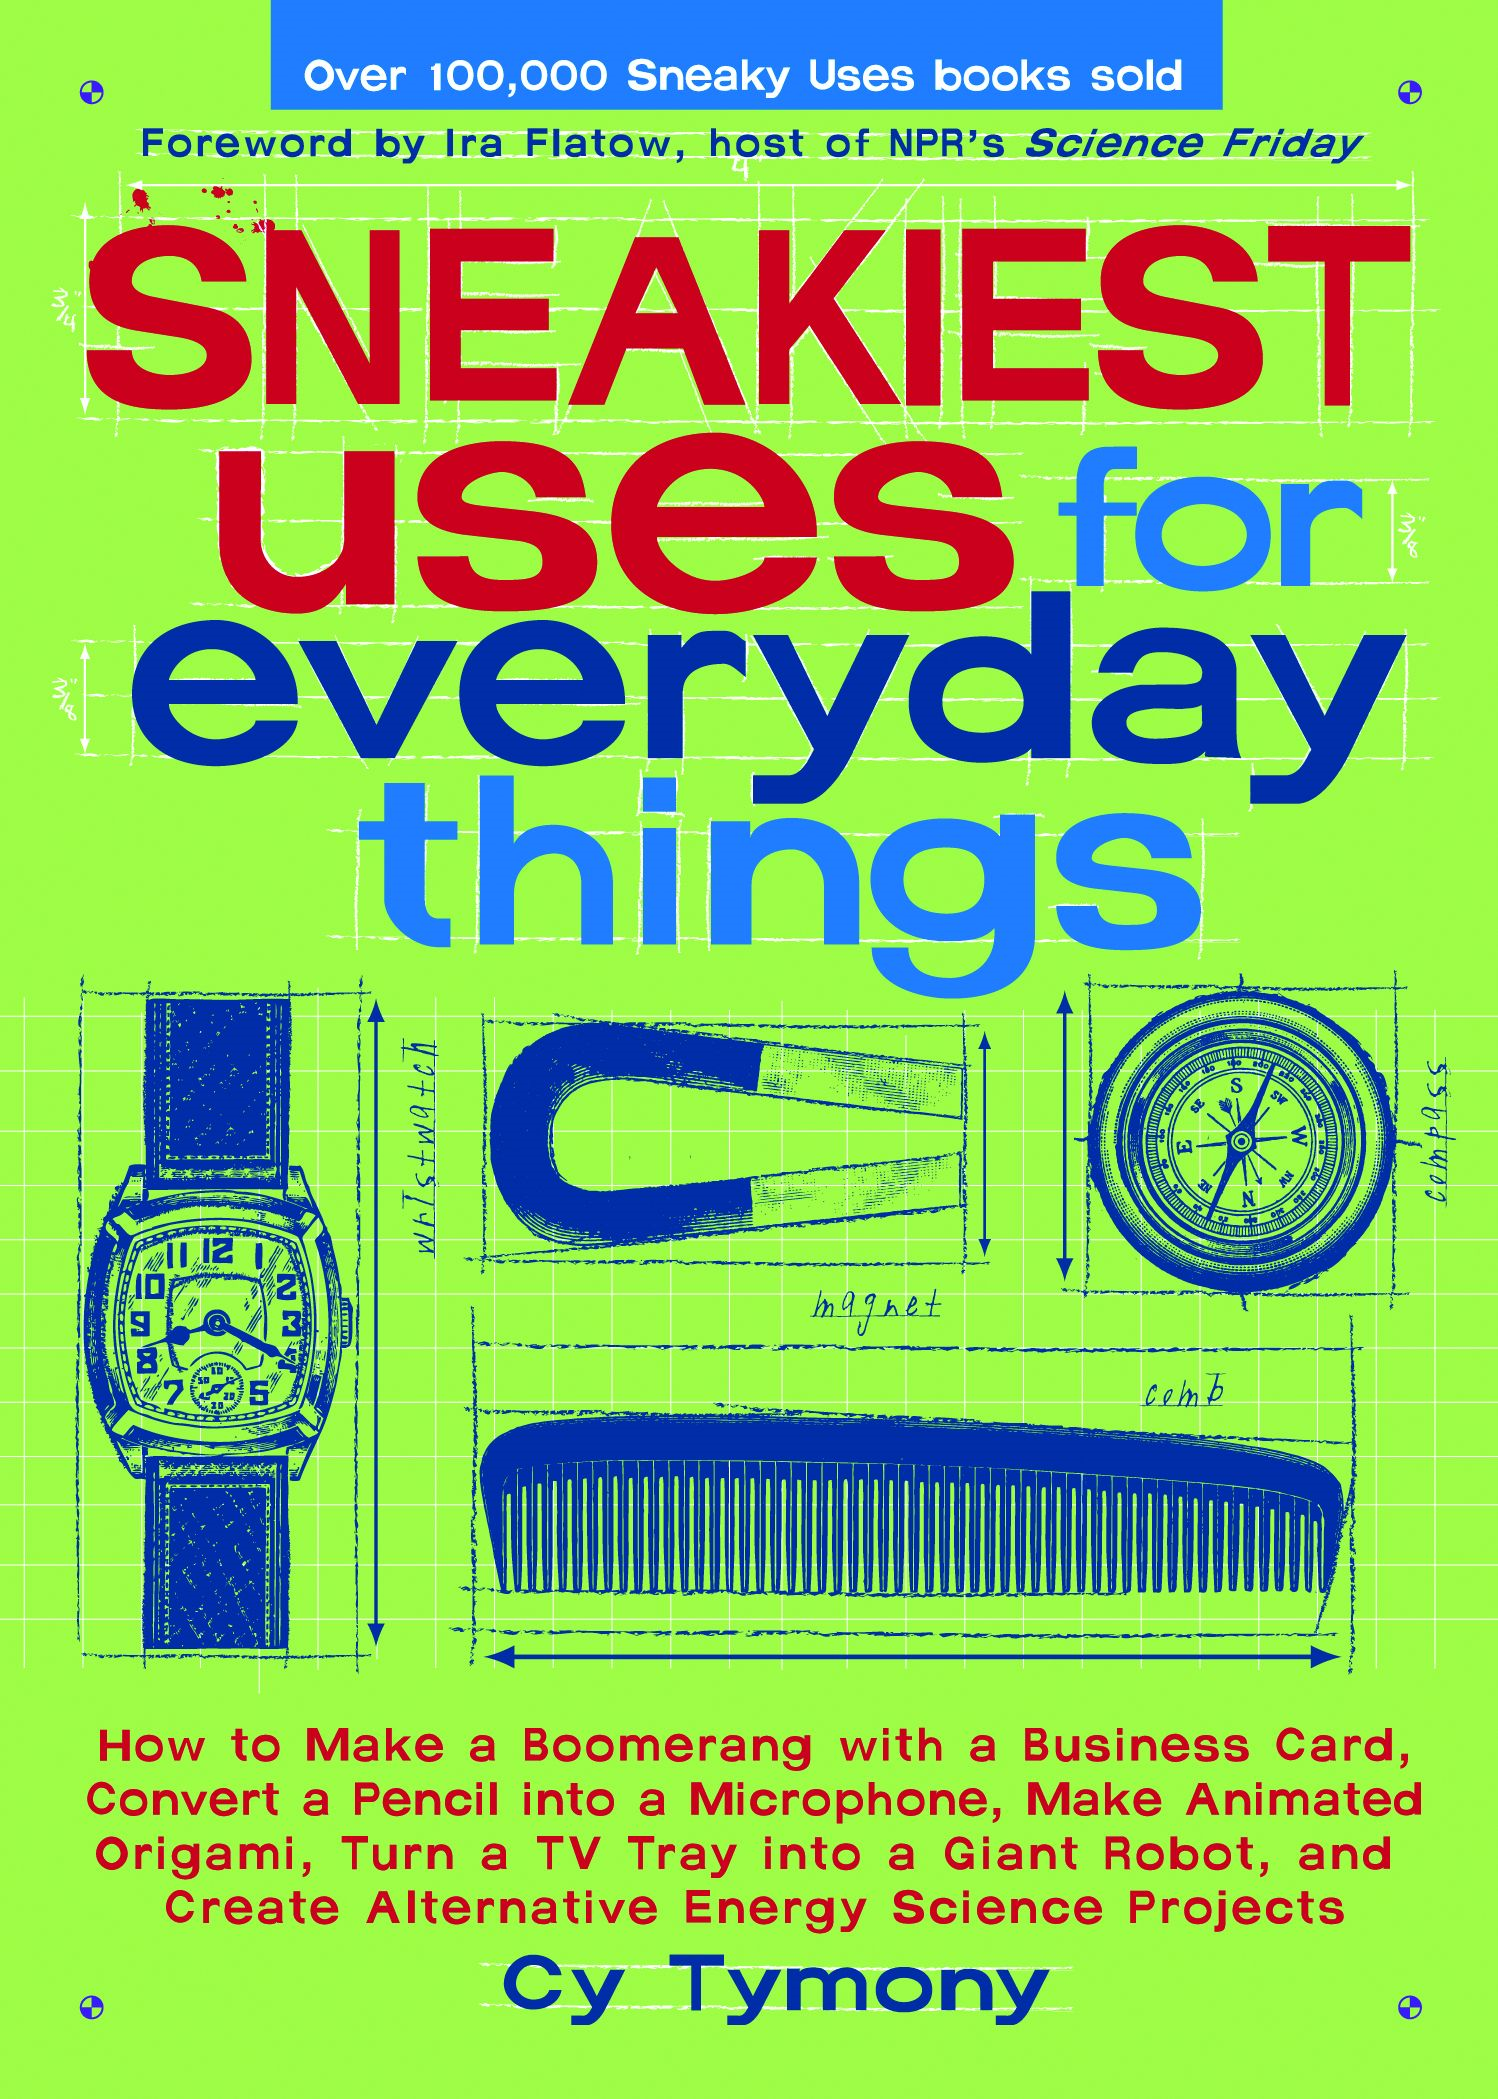 Sneakiest Uses for Everyday Things: How to Make a Boomerang with a Business Card, Convert a Pencil into a Microphone and more